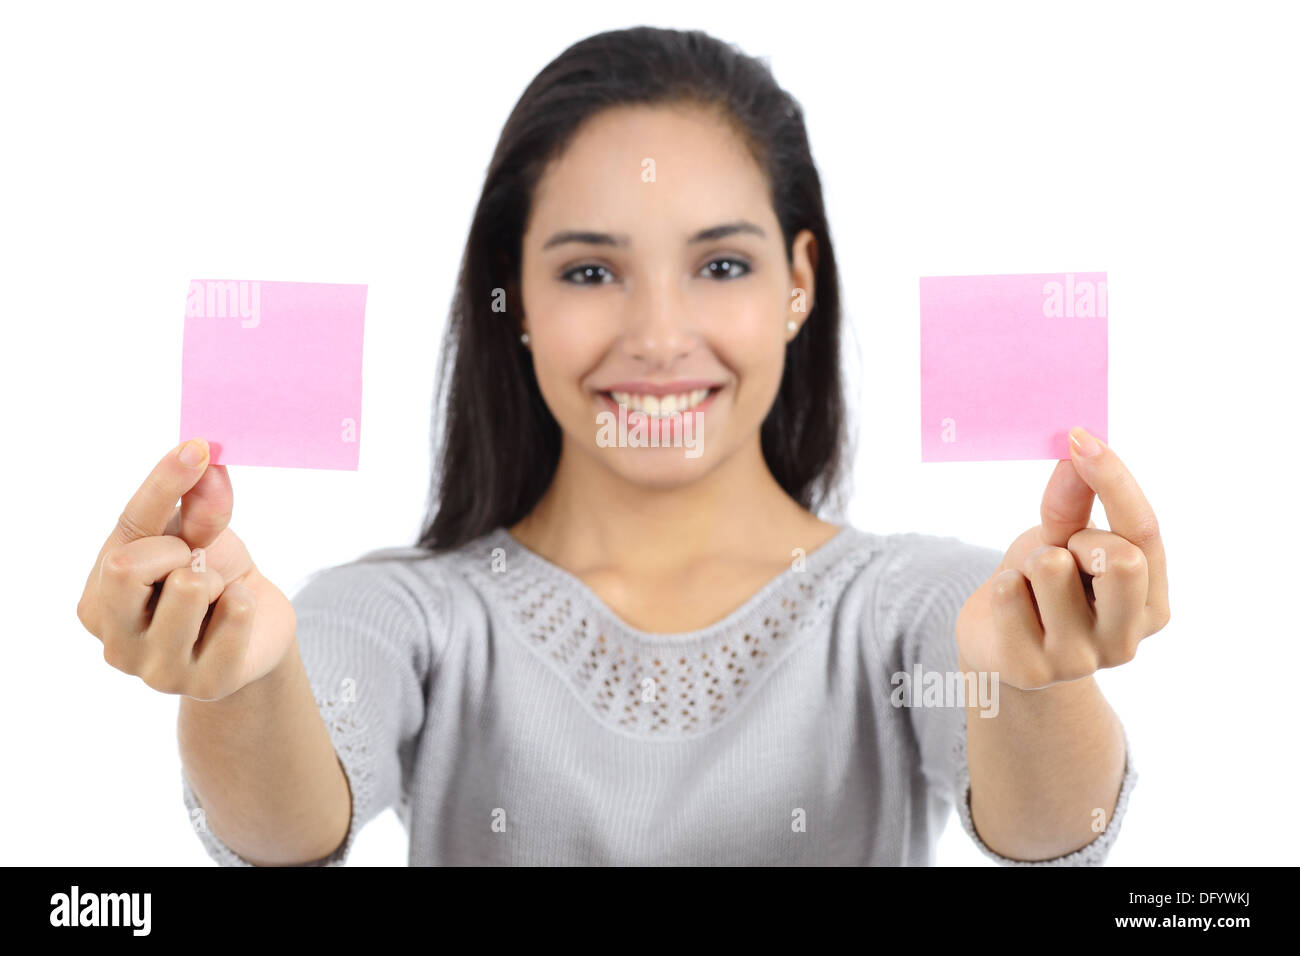 Woman showing two paper notes isolated on a white background - Stock Image